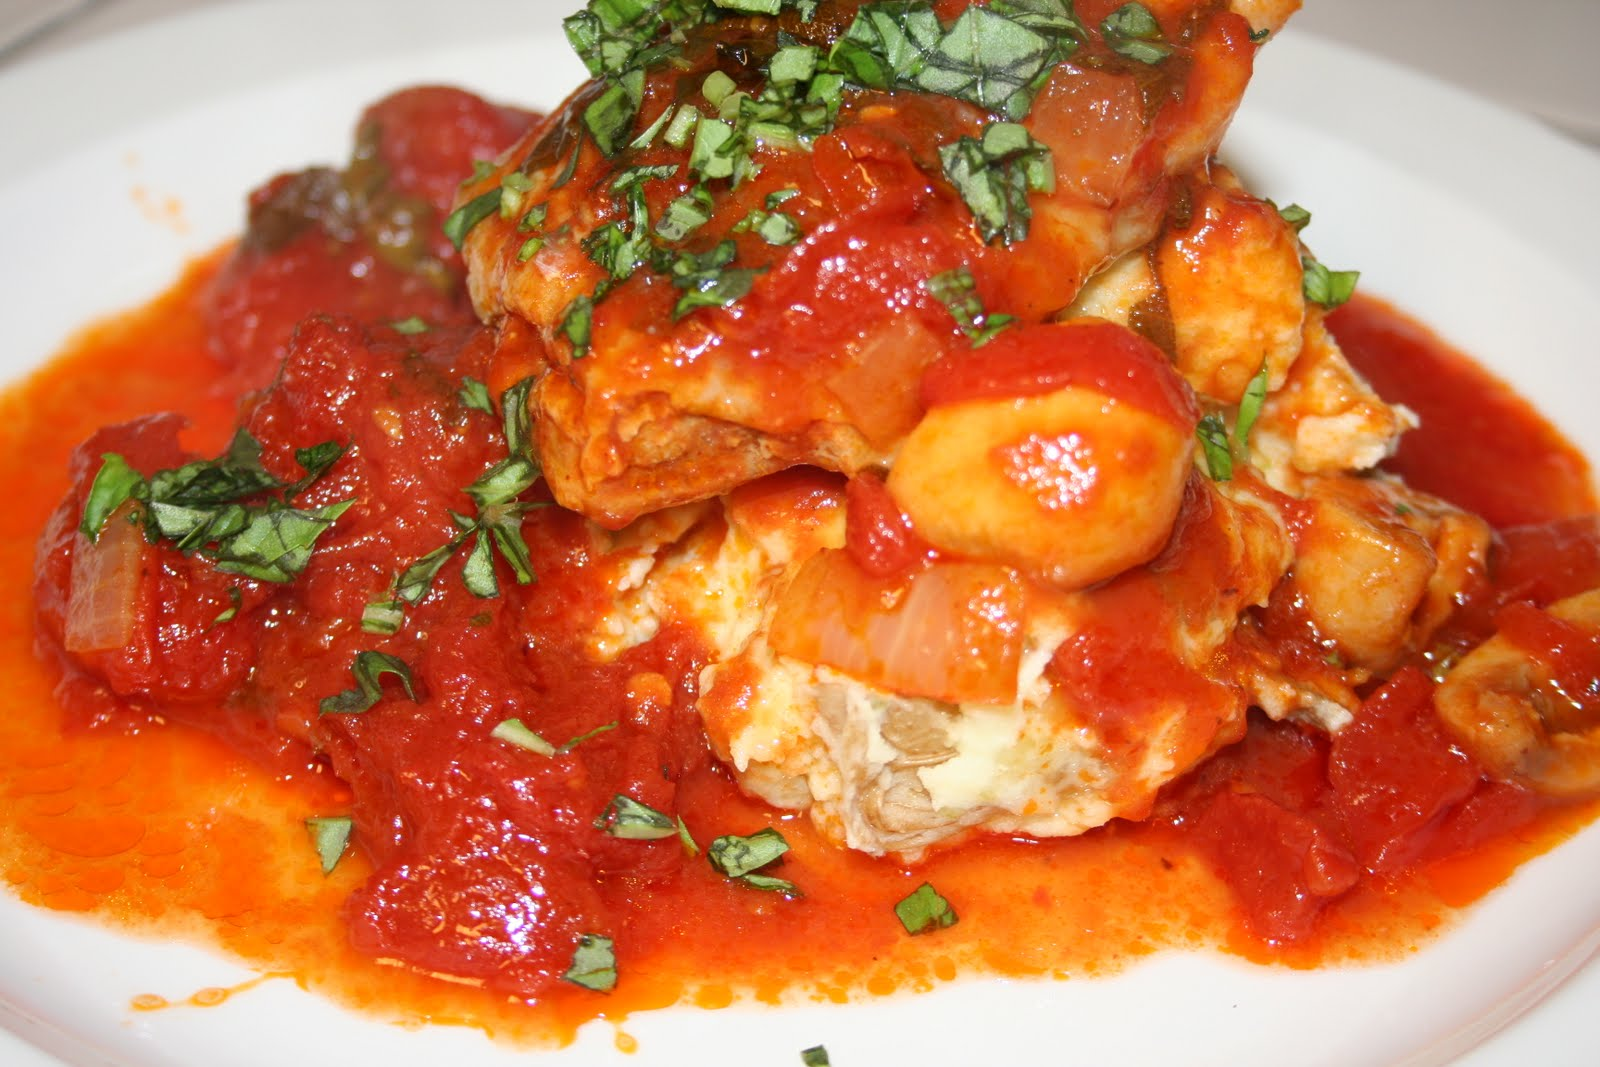 Braised Chicken with Tomatoes and Garlic